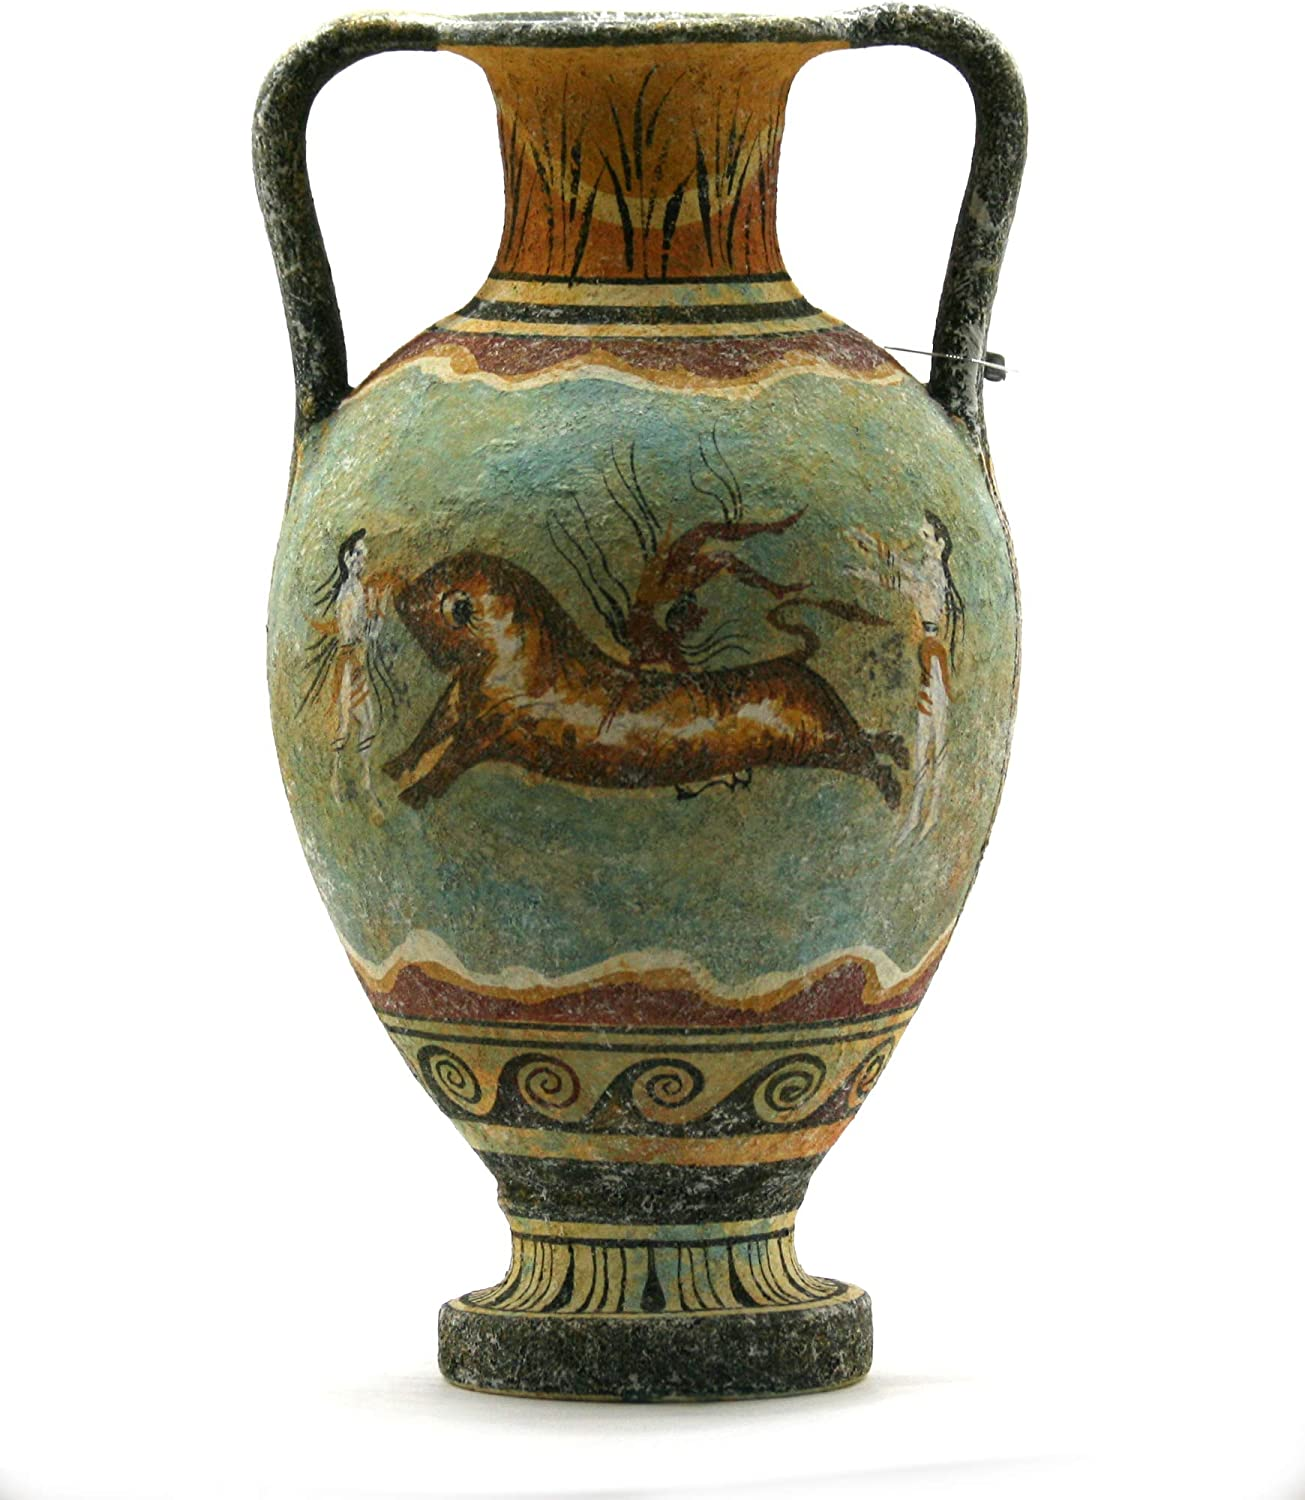 Minoan Vase Pottery Painting Bull Leaping Ancient Greek Crete Ceramic Knossos